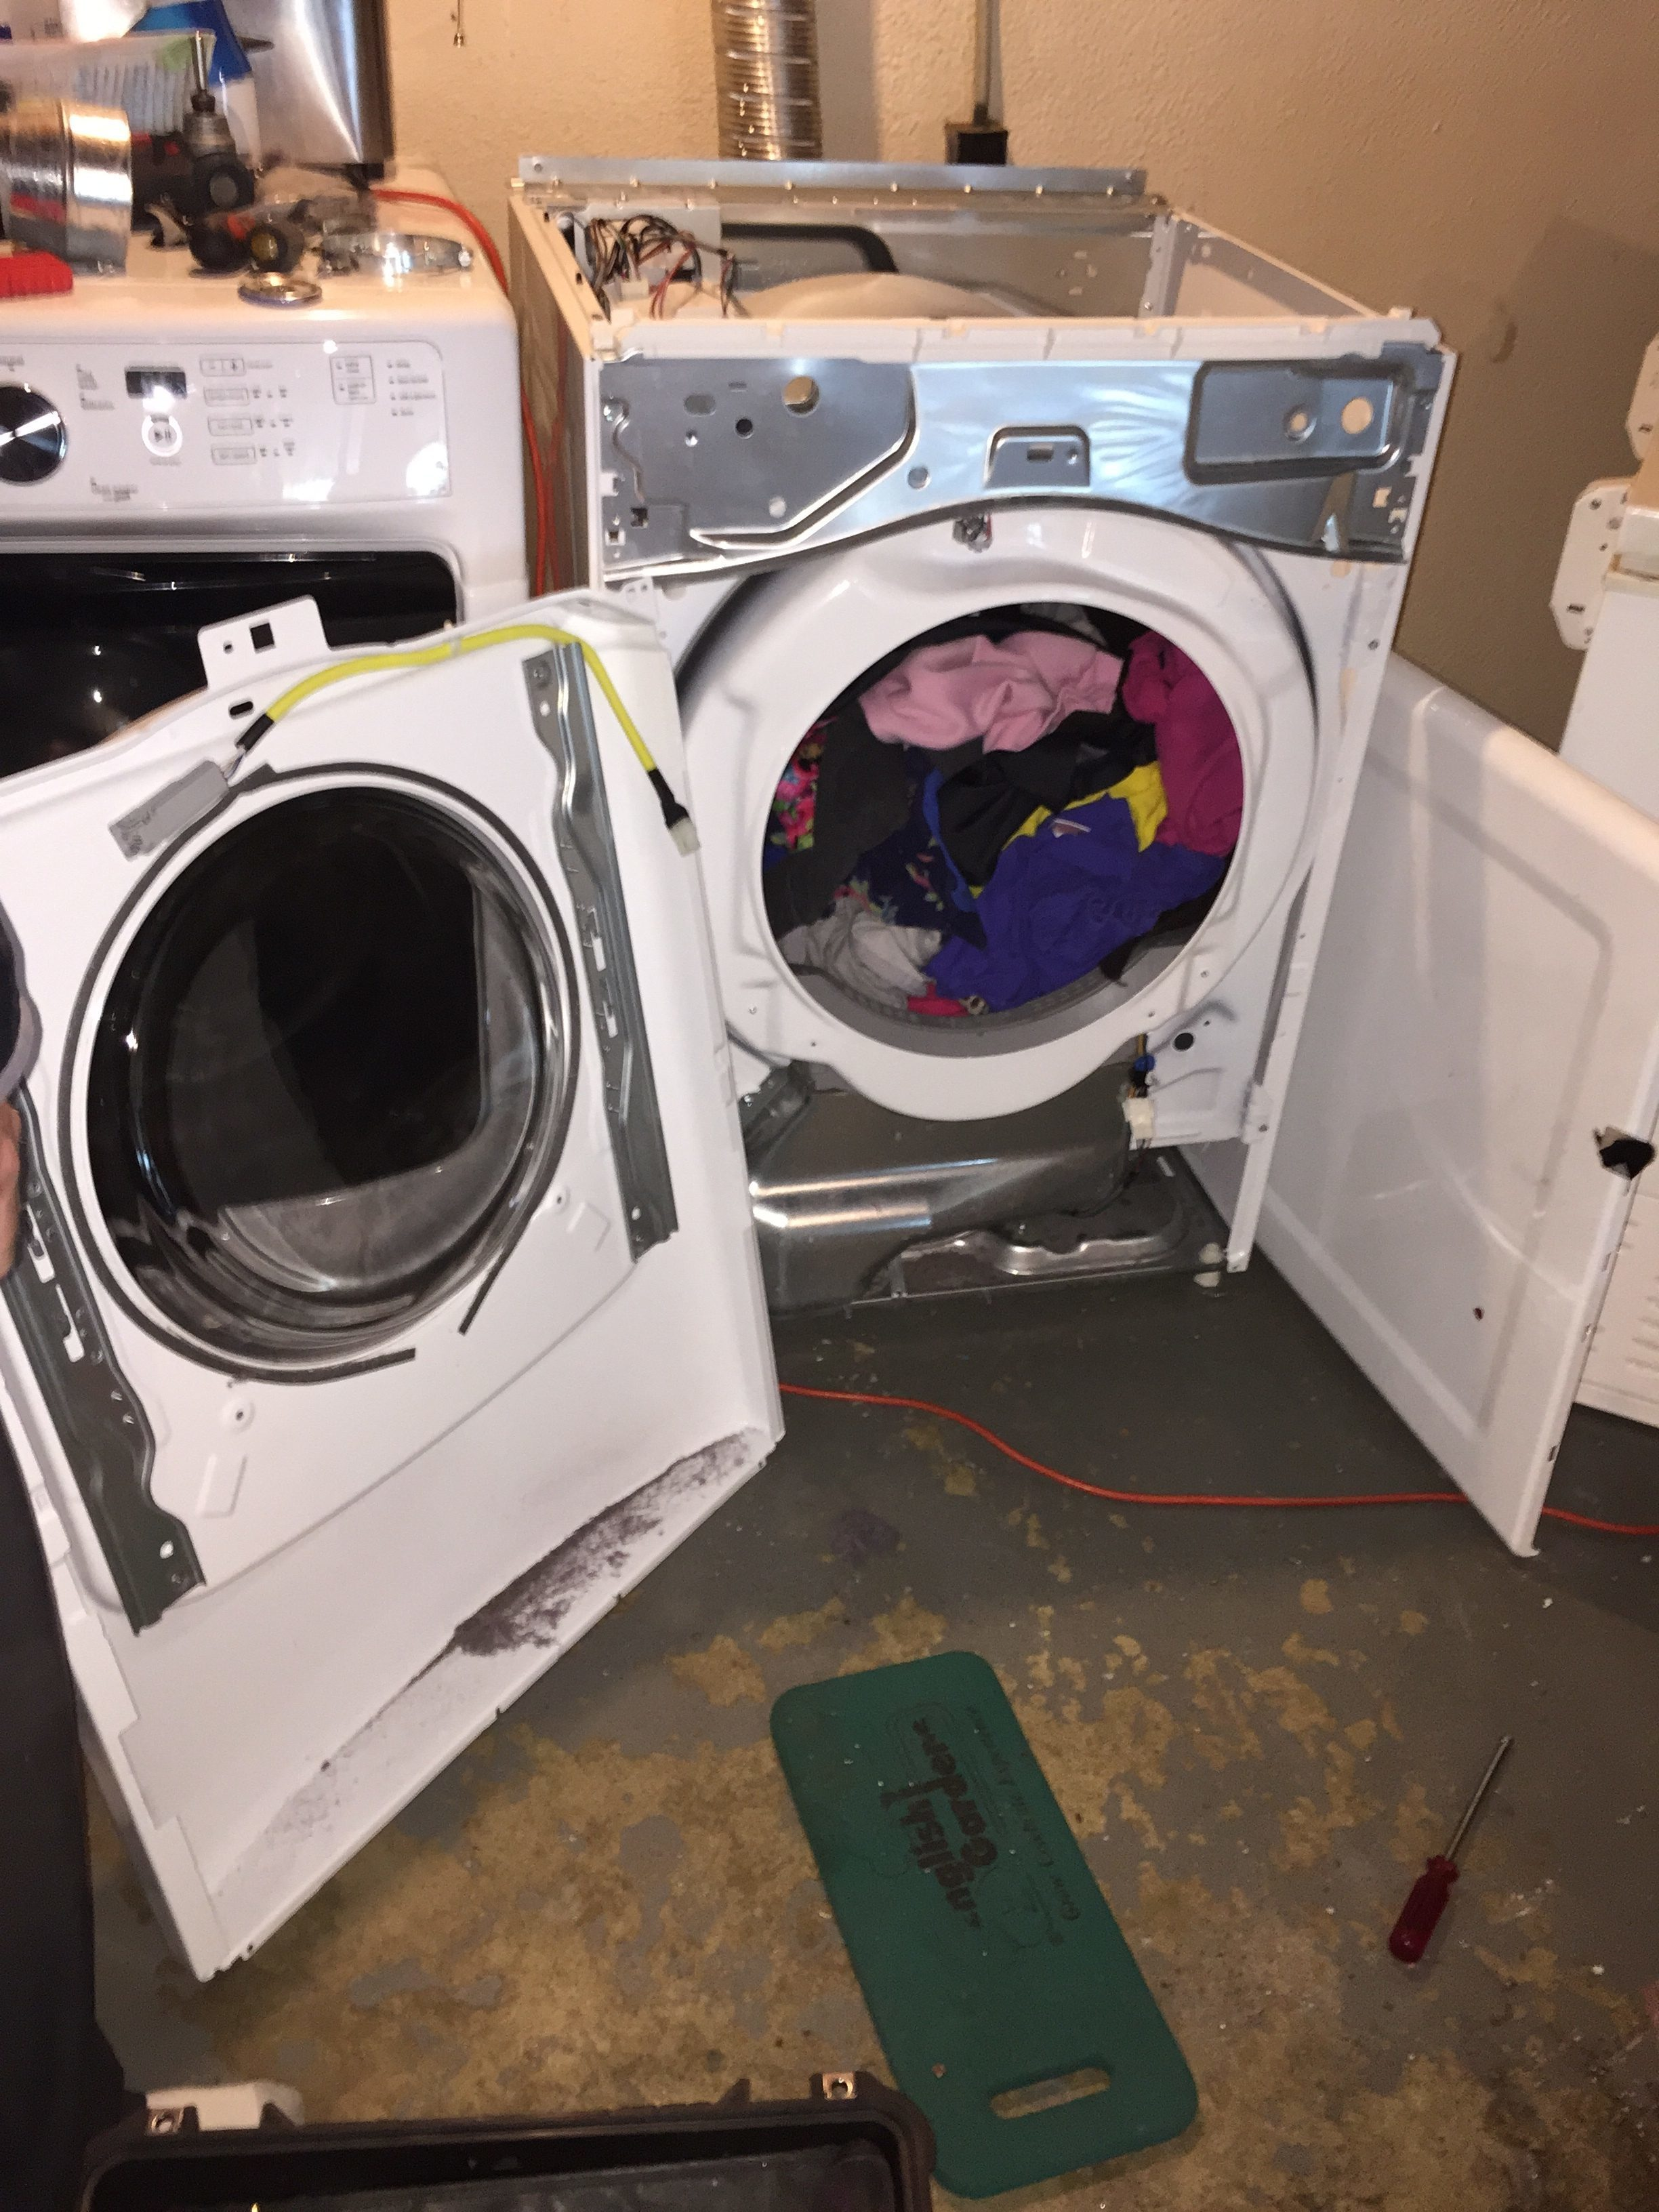 Top 2590 Complaints and Reviews about Maytag Washers Dryers